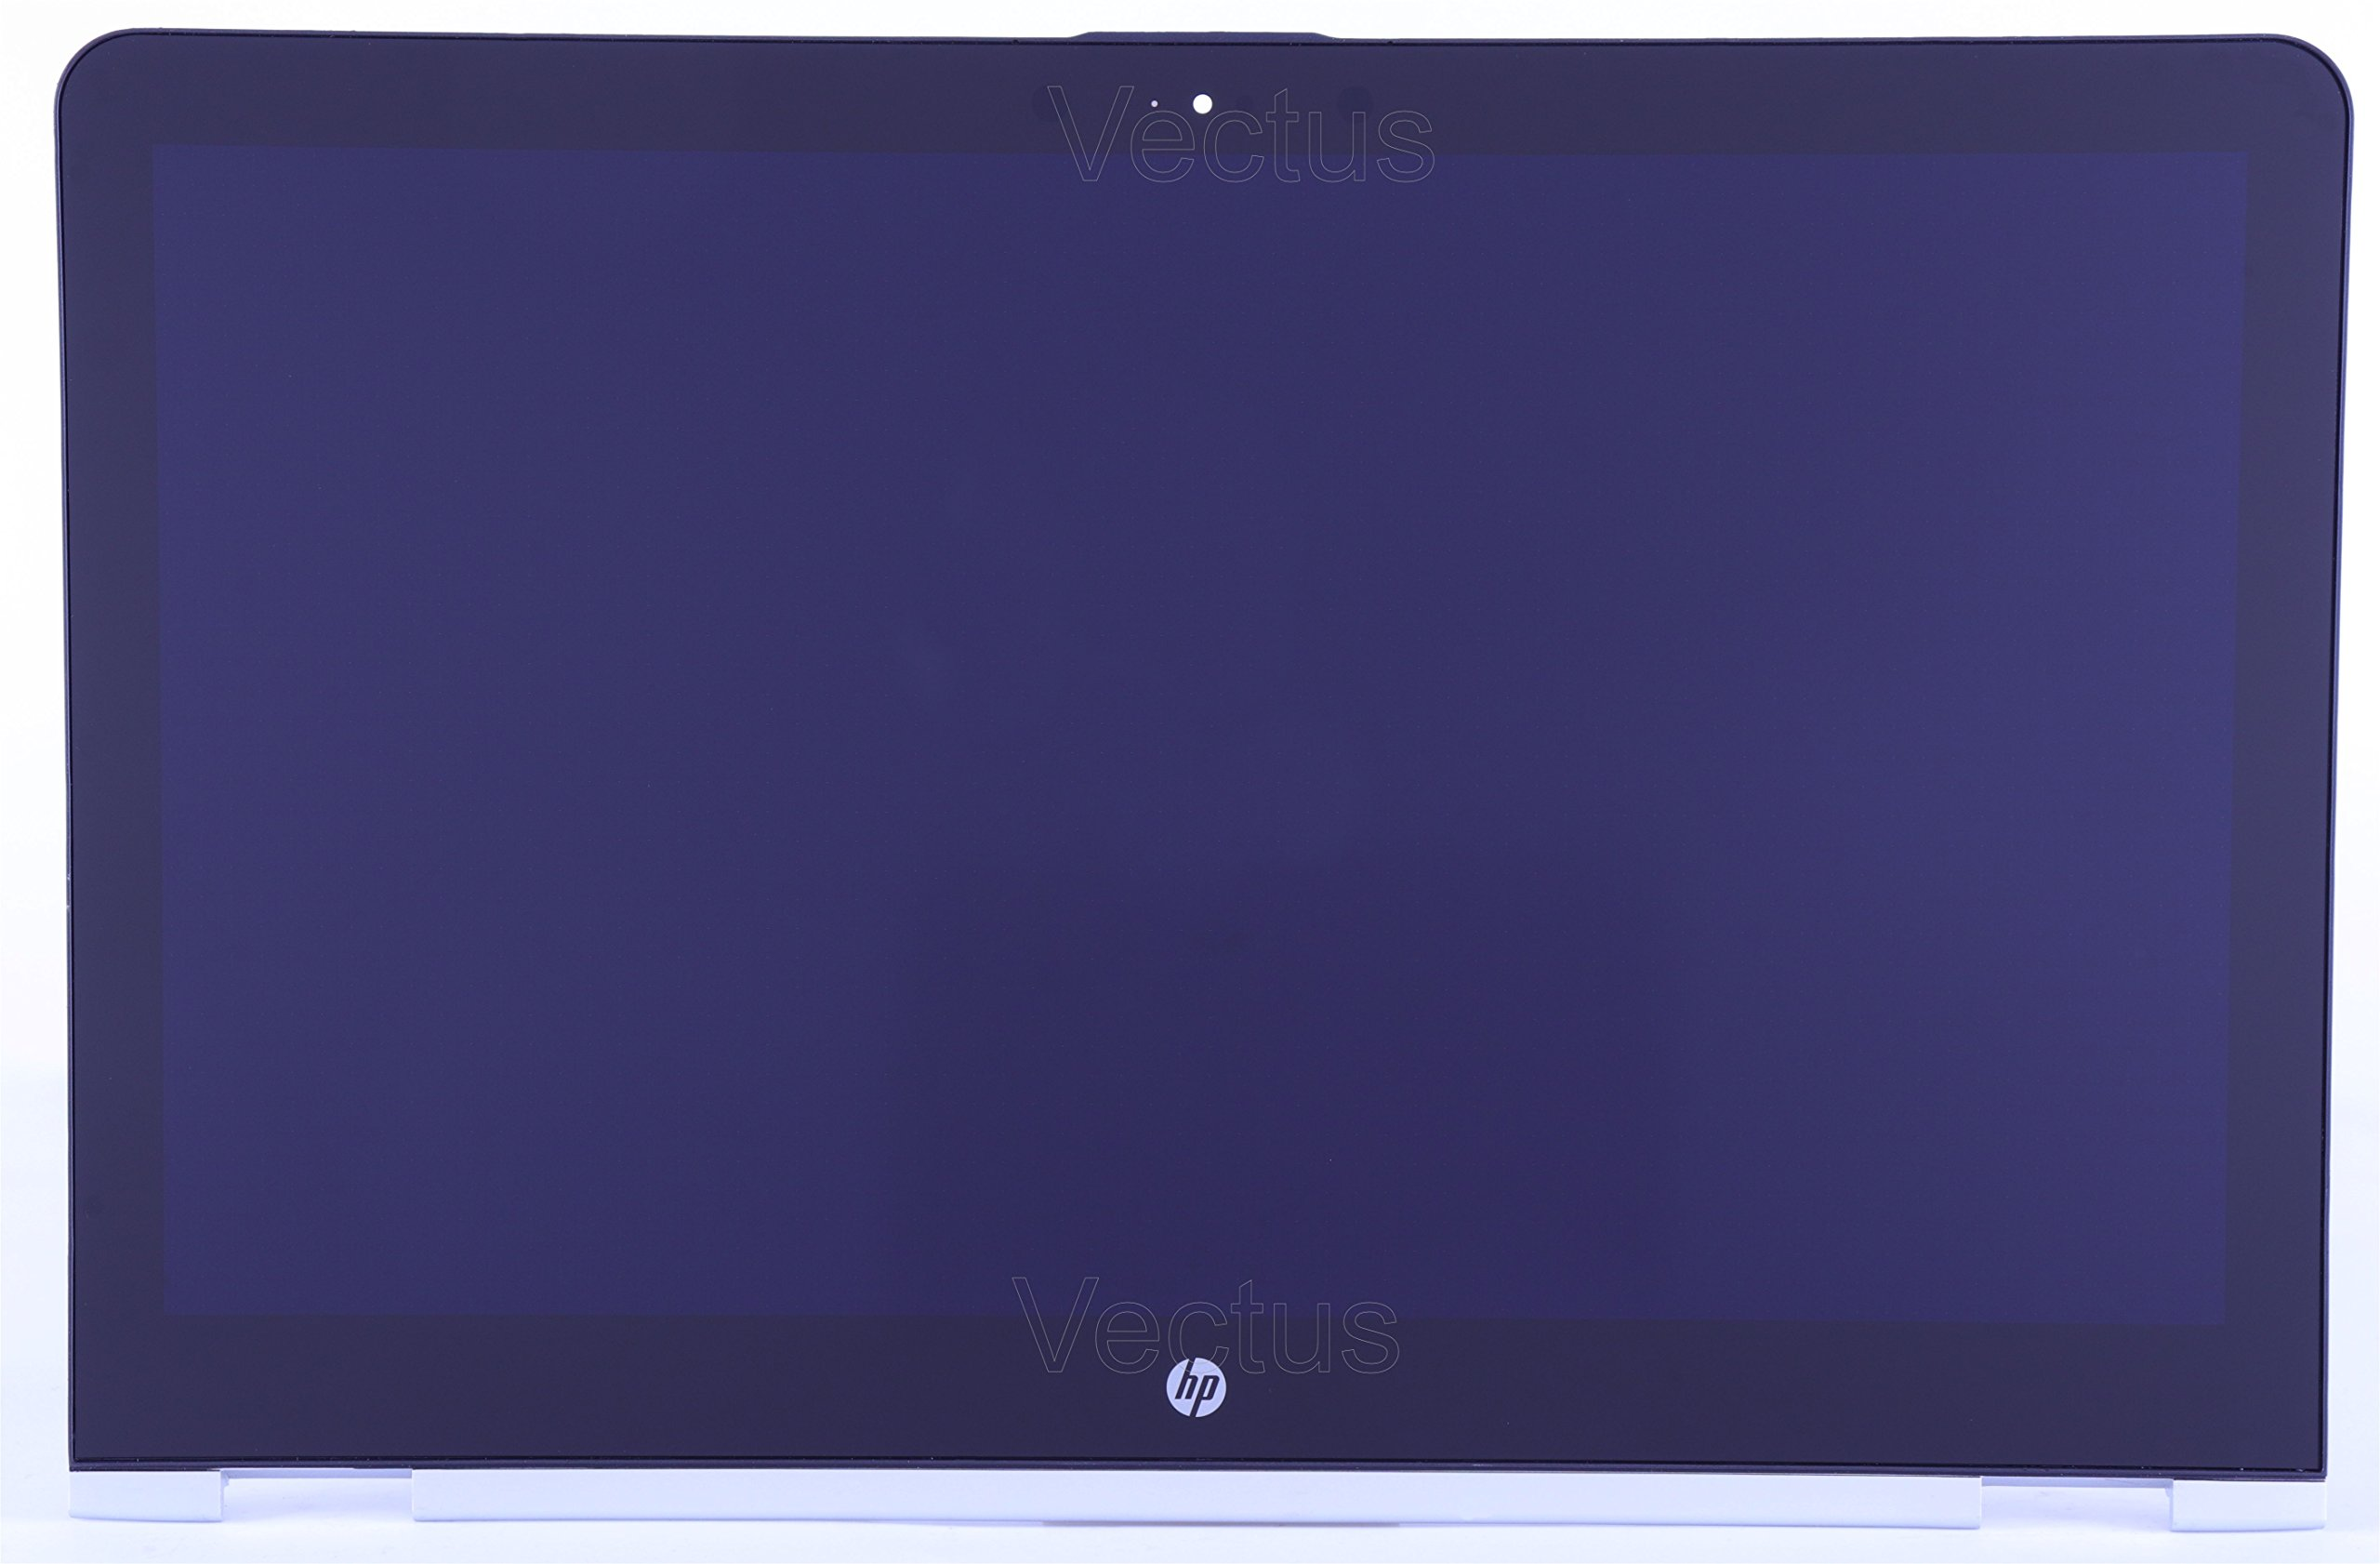 HP ENVY x360 M6-AQ M6-AQ005DX Touch Digitizer 15.6'' IPS FHD 1920 x 1080 LCD and Bezel Display Assembly (with touch controller board) p/n 856811-001